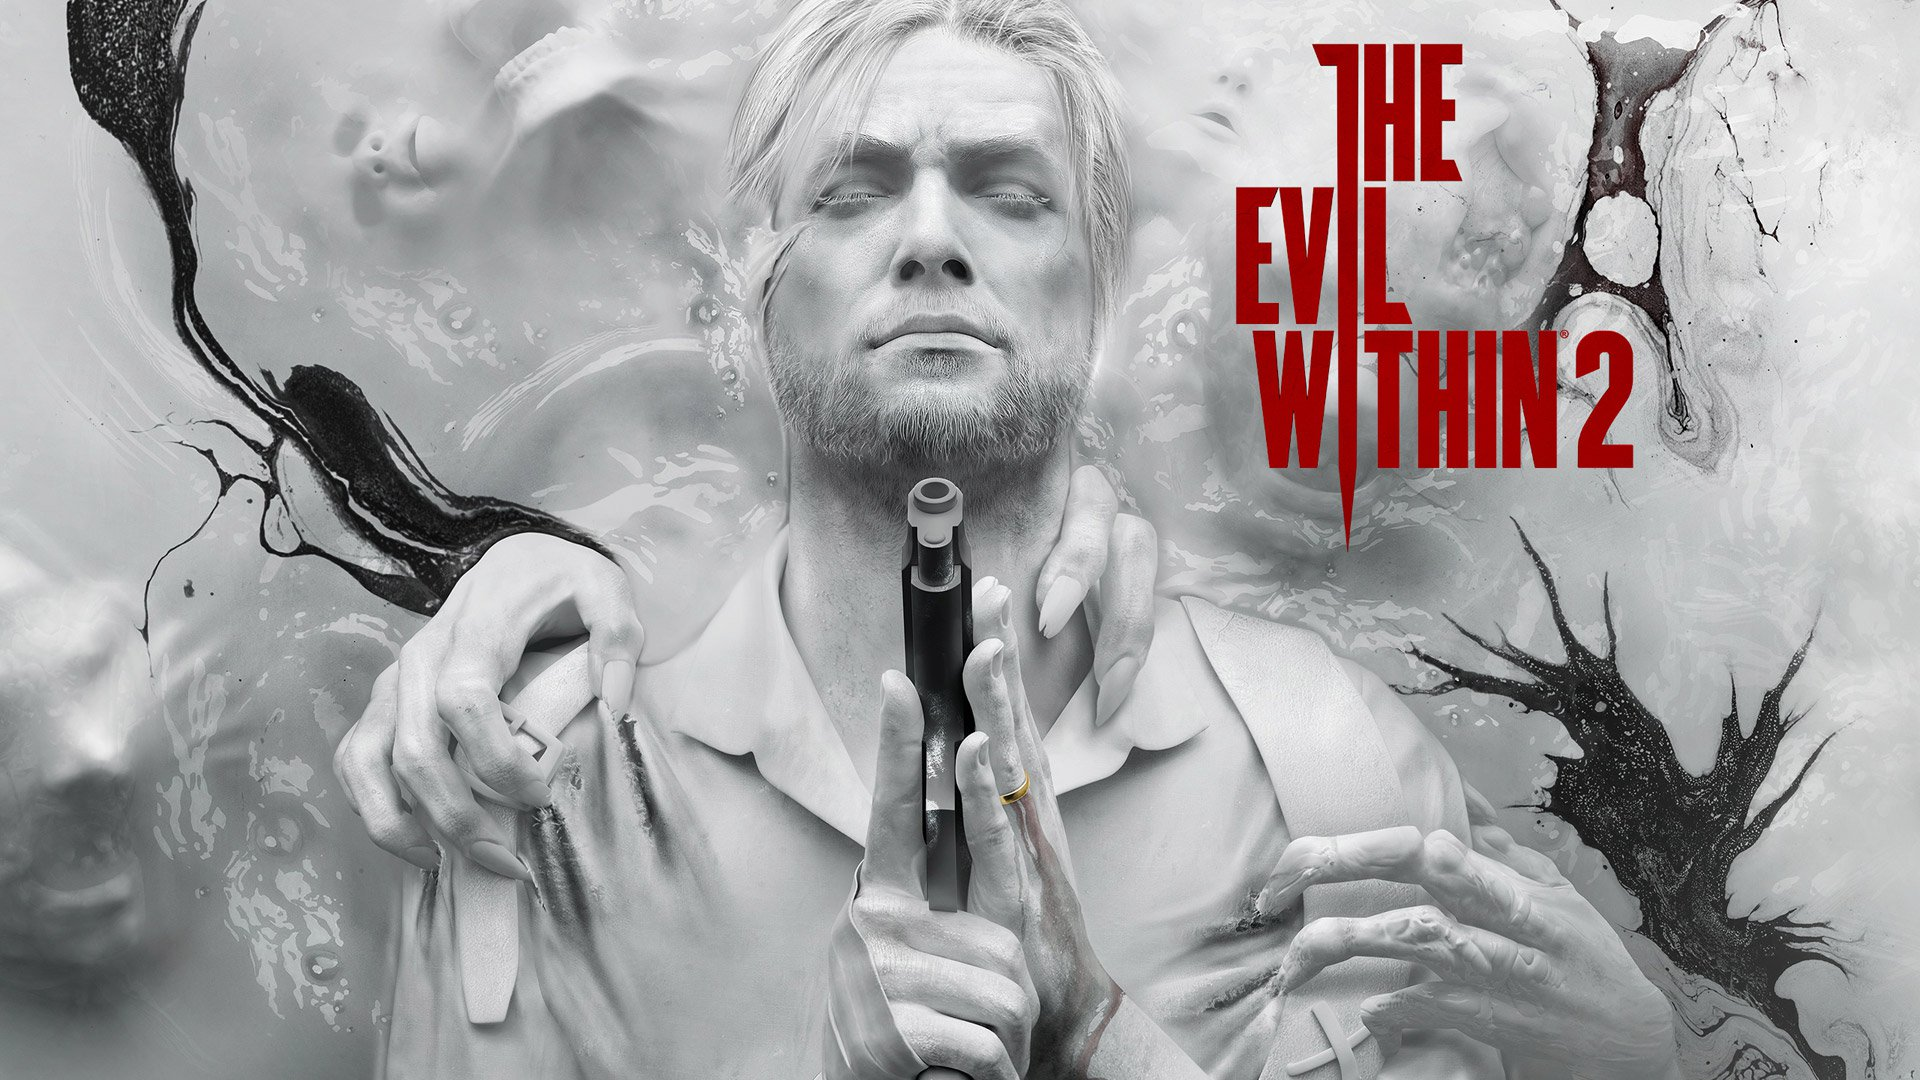 the evil within 2 desktop wallpaper 61707